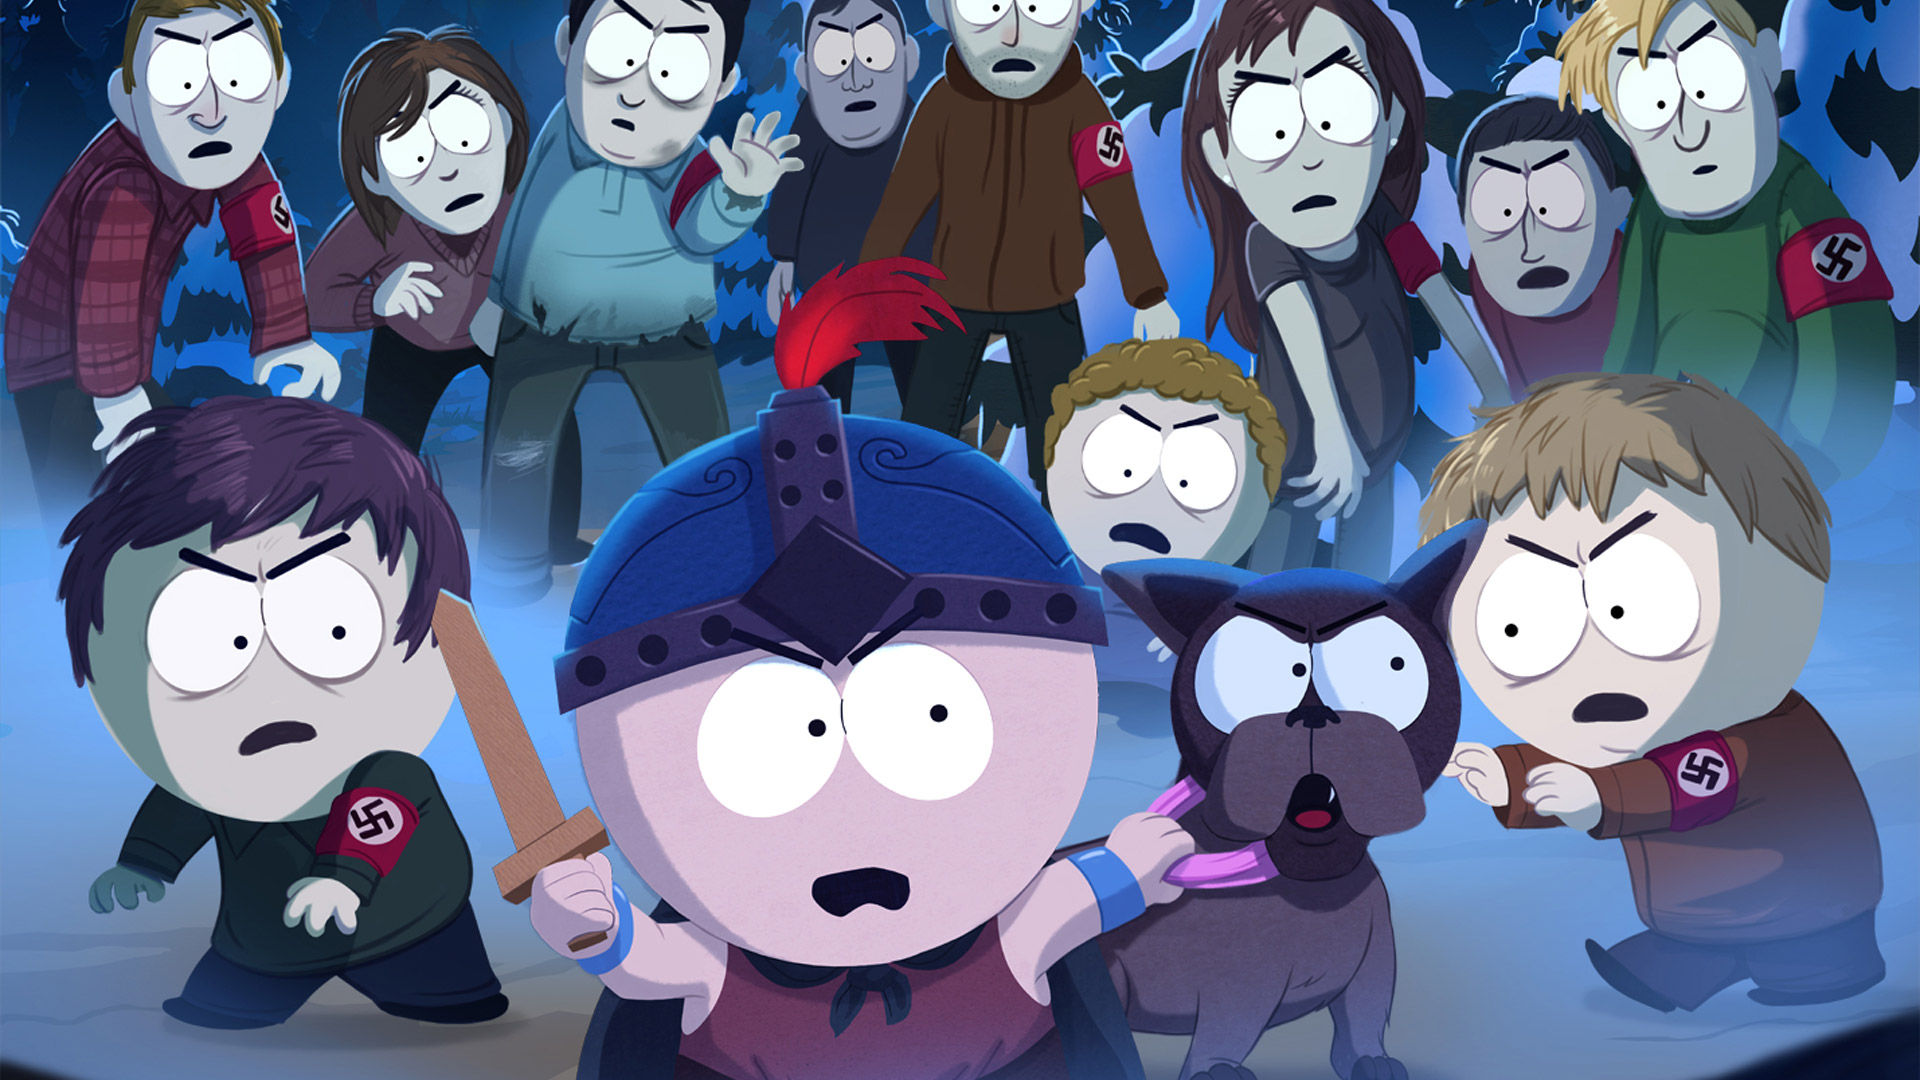 Free South Park: The Stick of Truth Wallpaper in 1920x1080